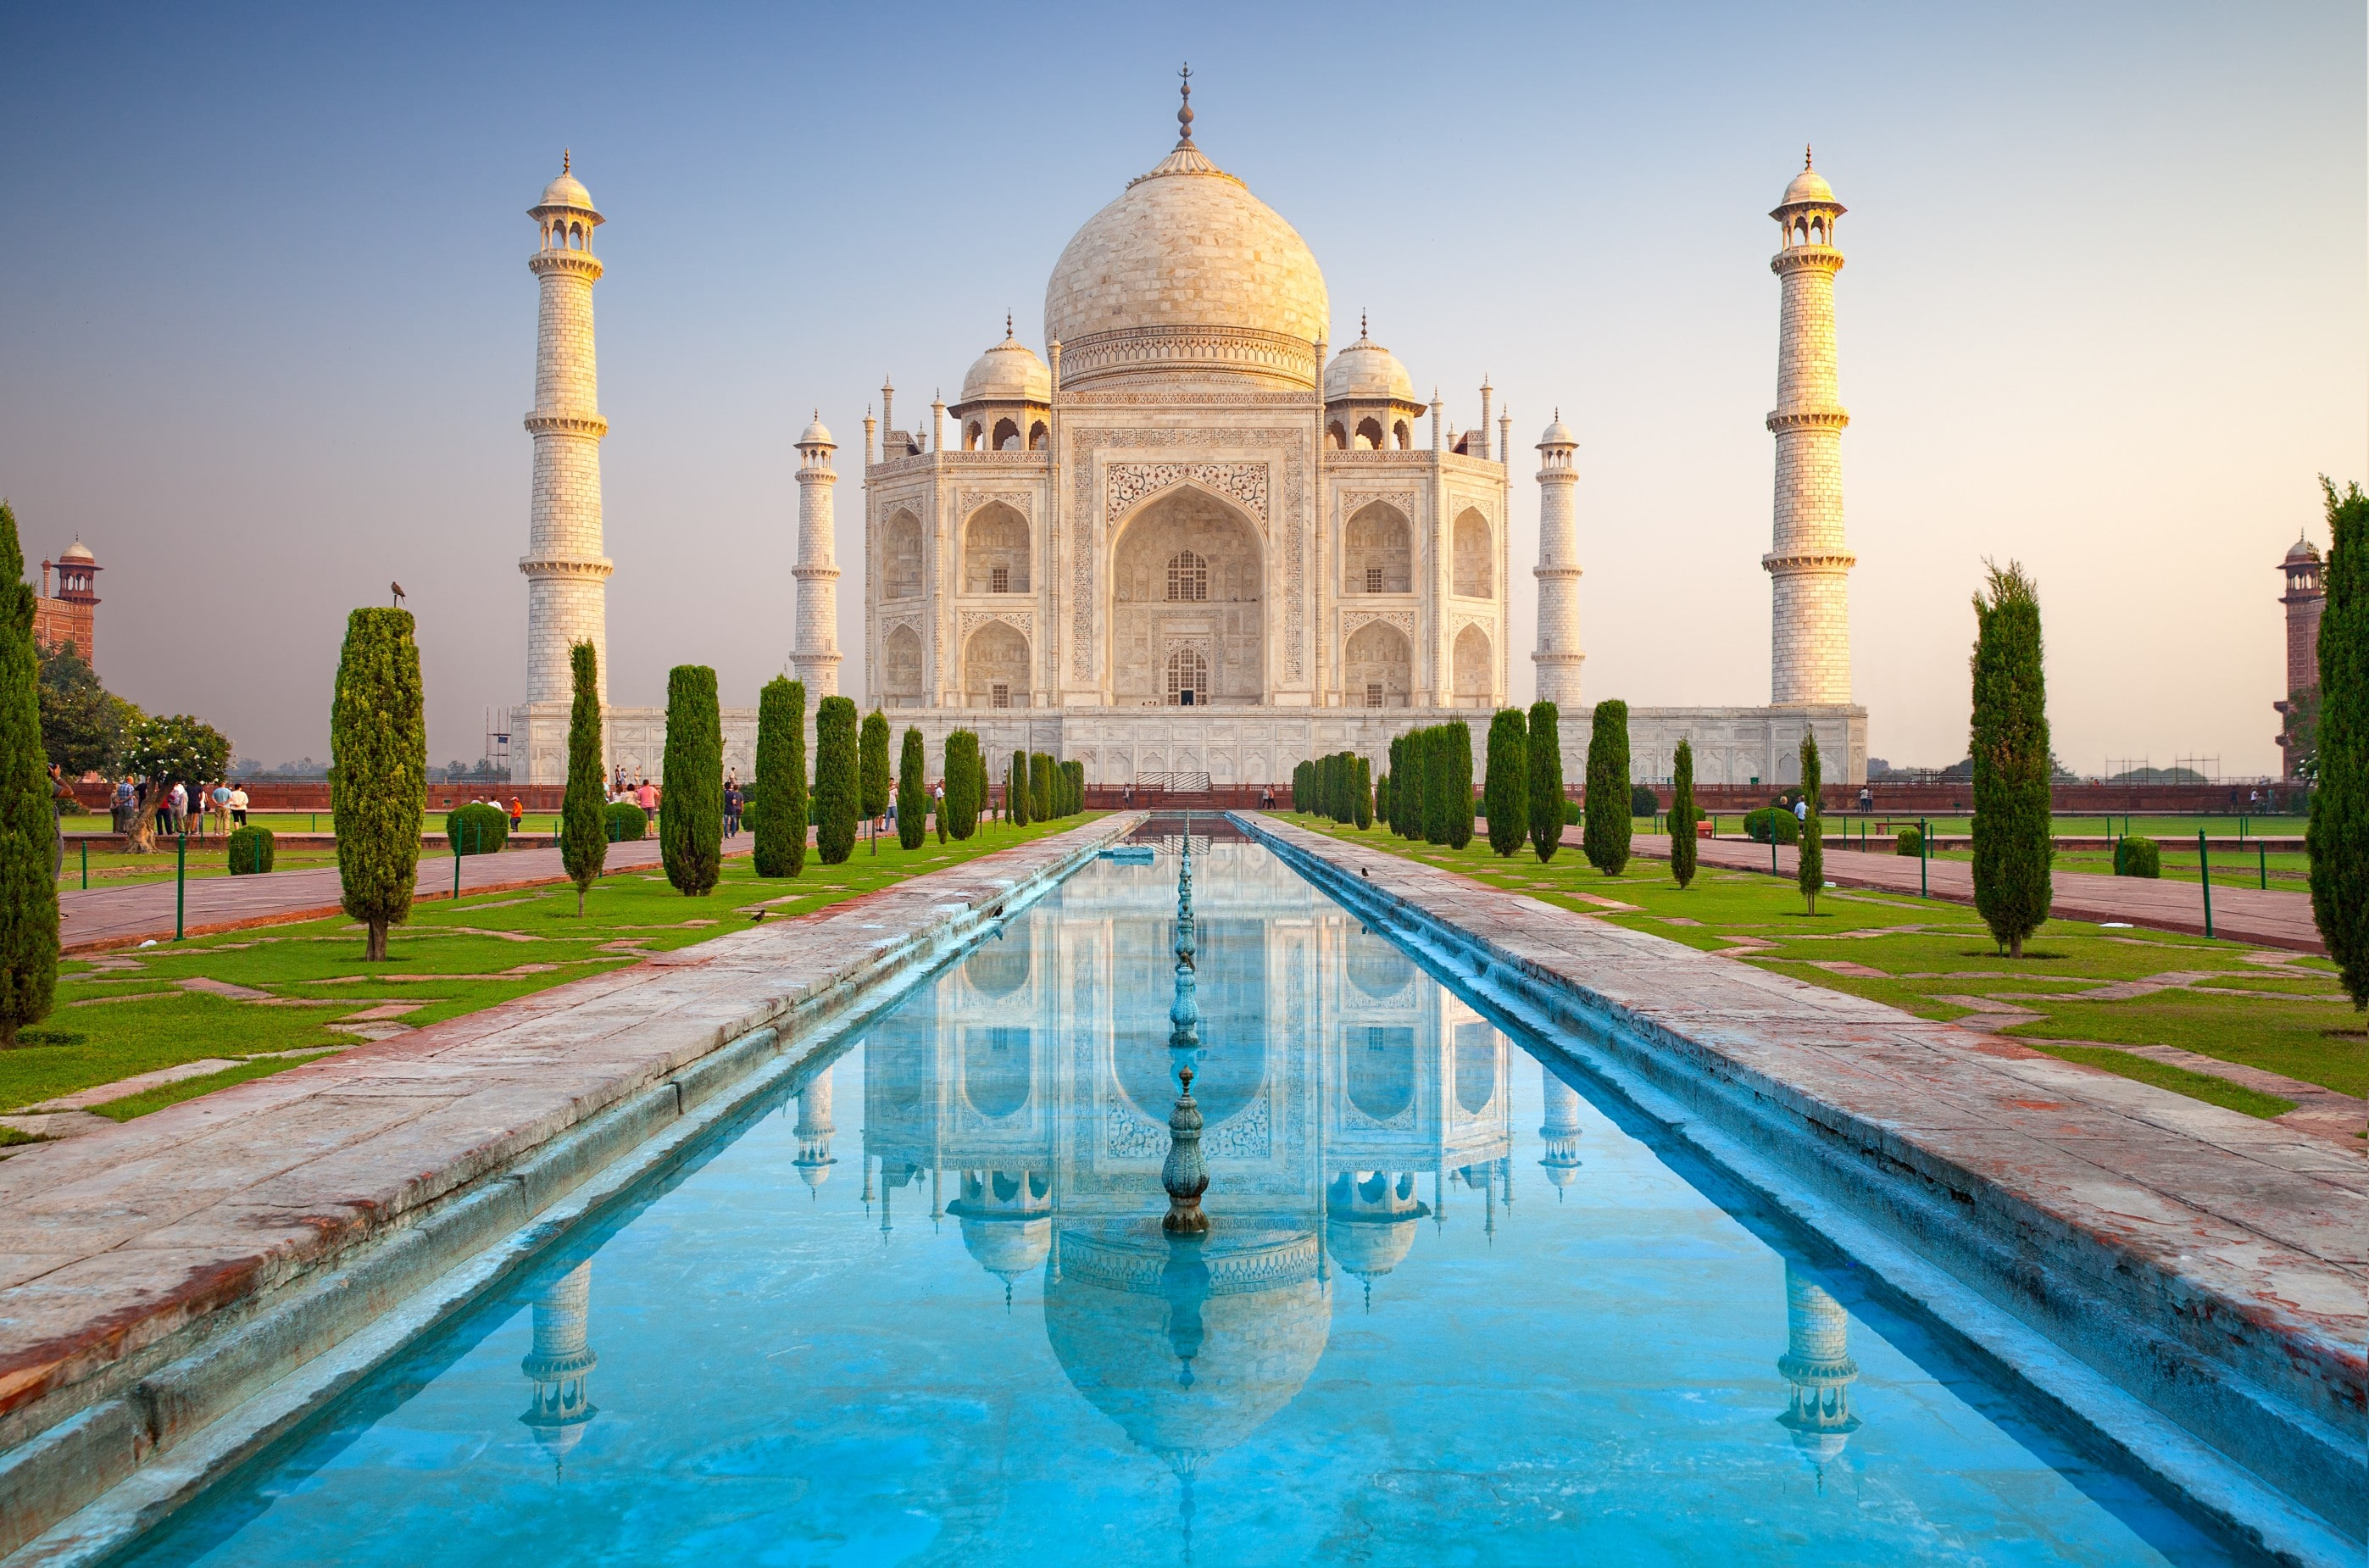 Ideal Honeymoon Destinations for You Based On Your Zodiac Sign